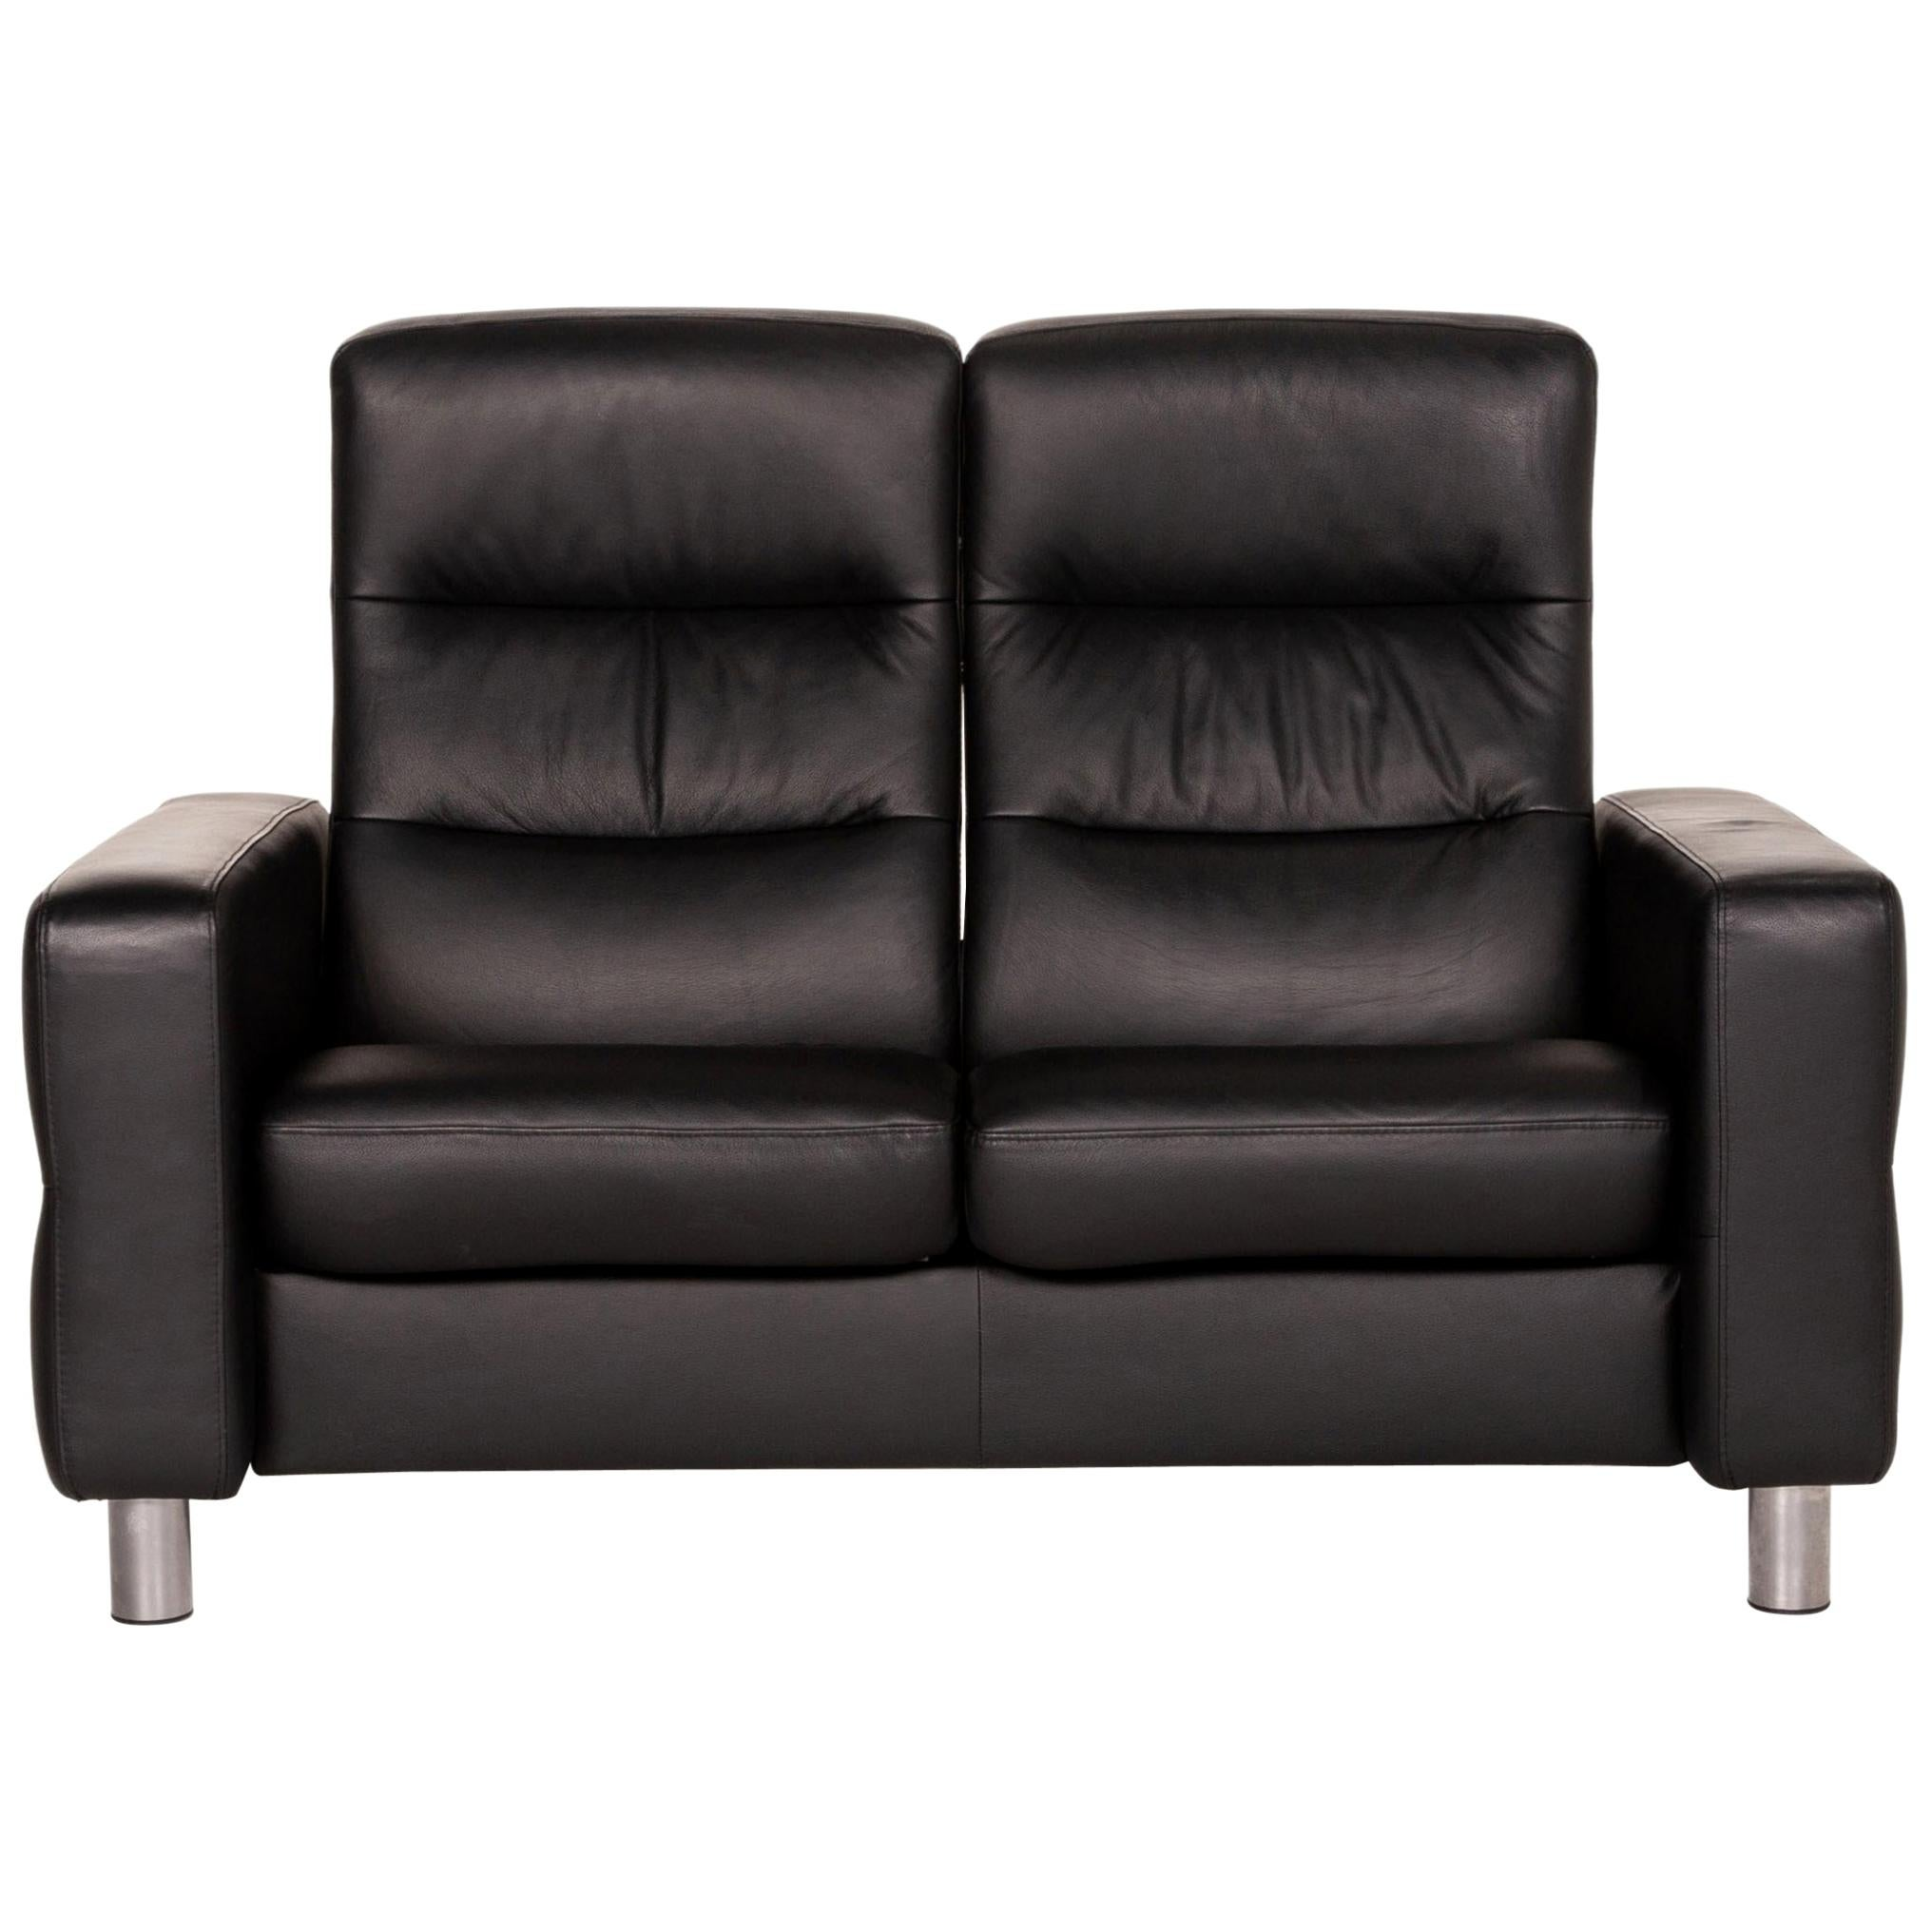 Stressless Wave Leather Sofa Black Two-Seater Function Relax Function Couch